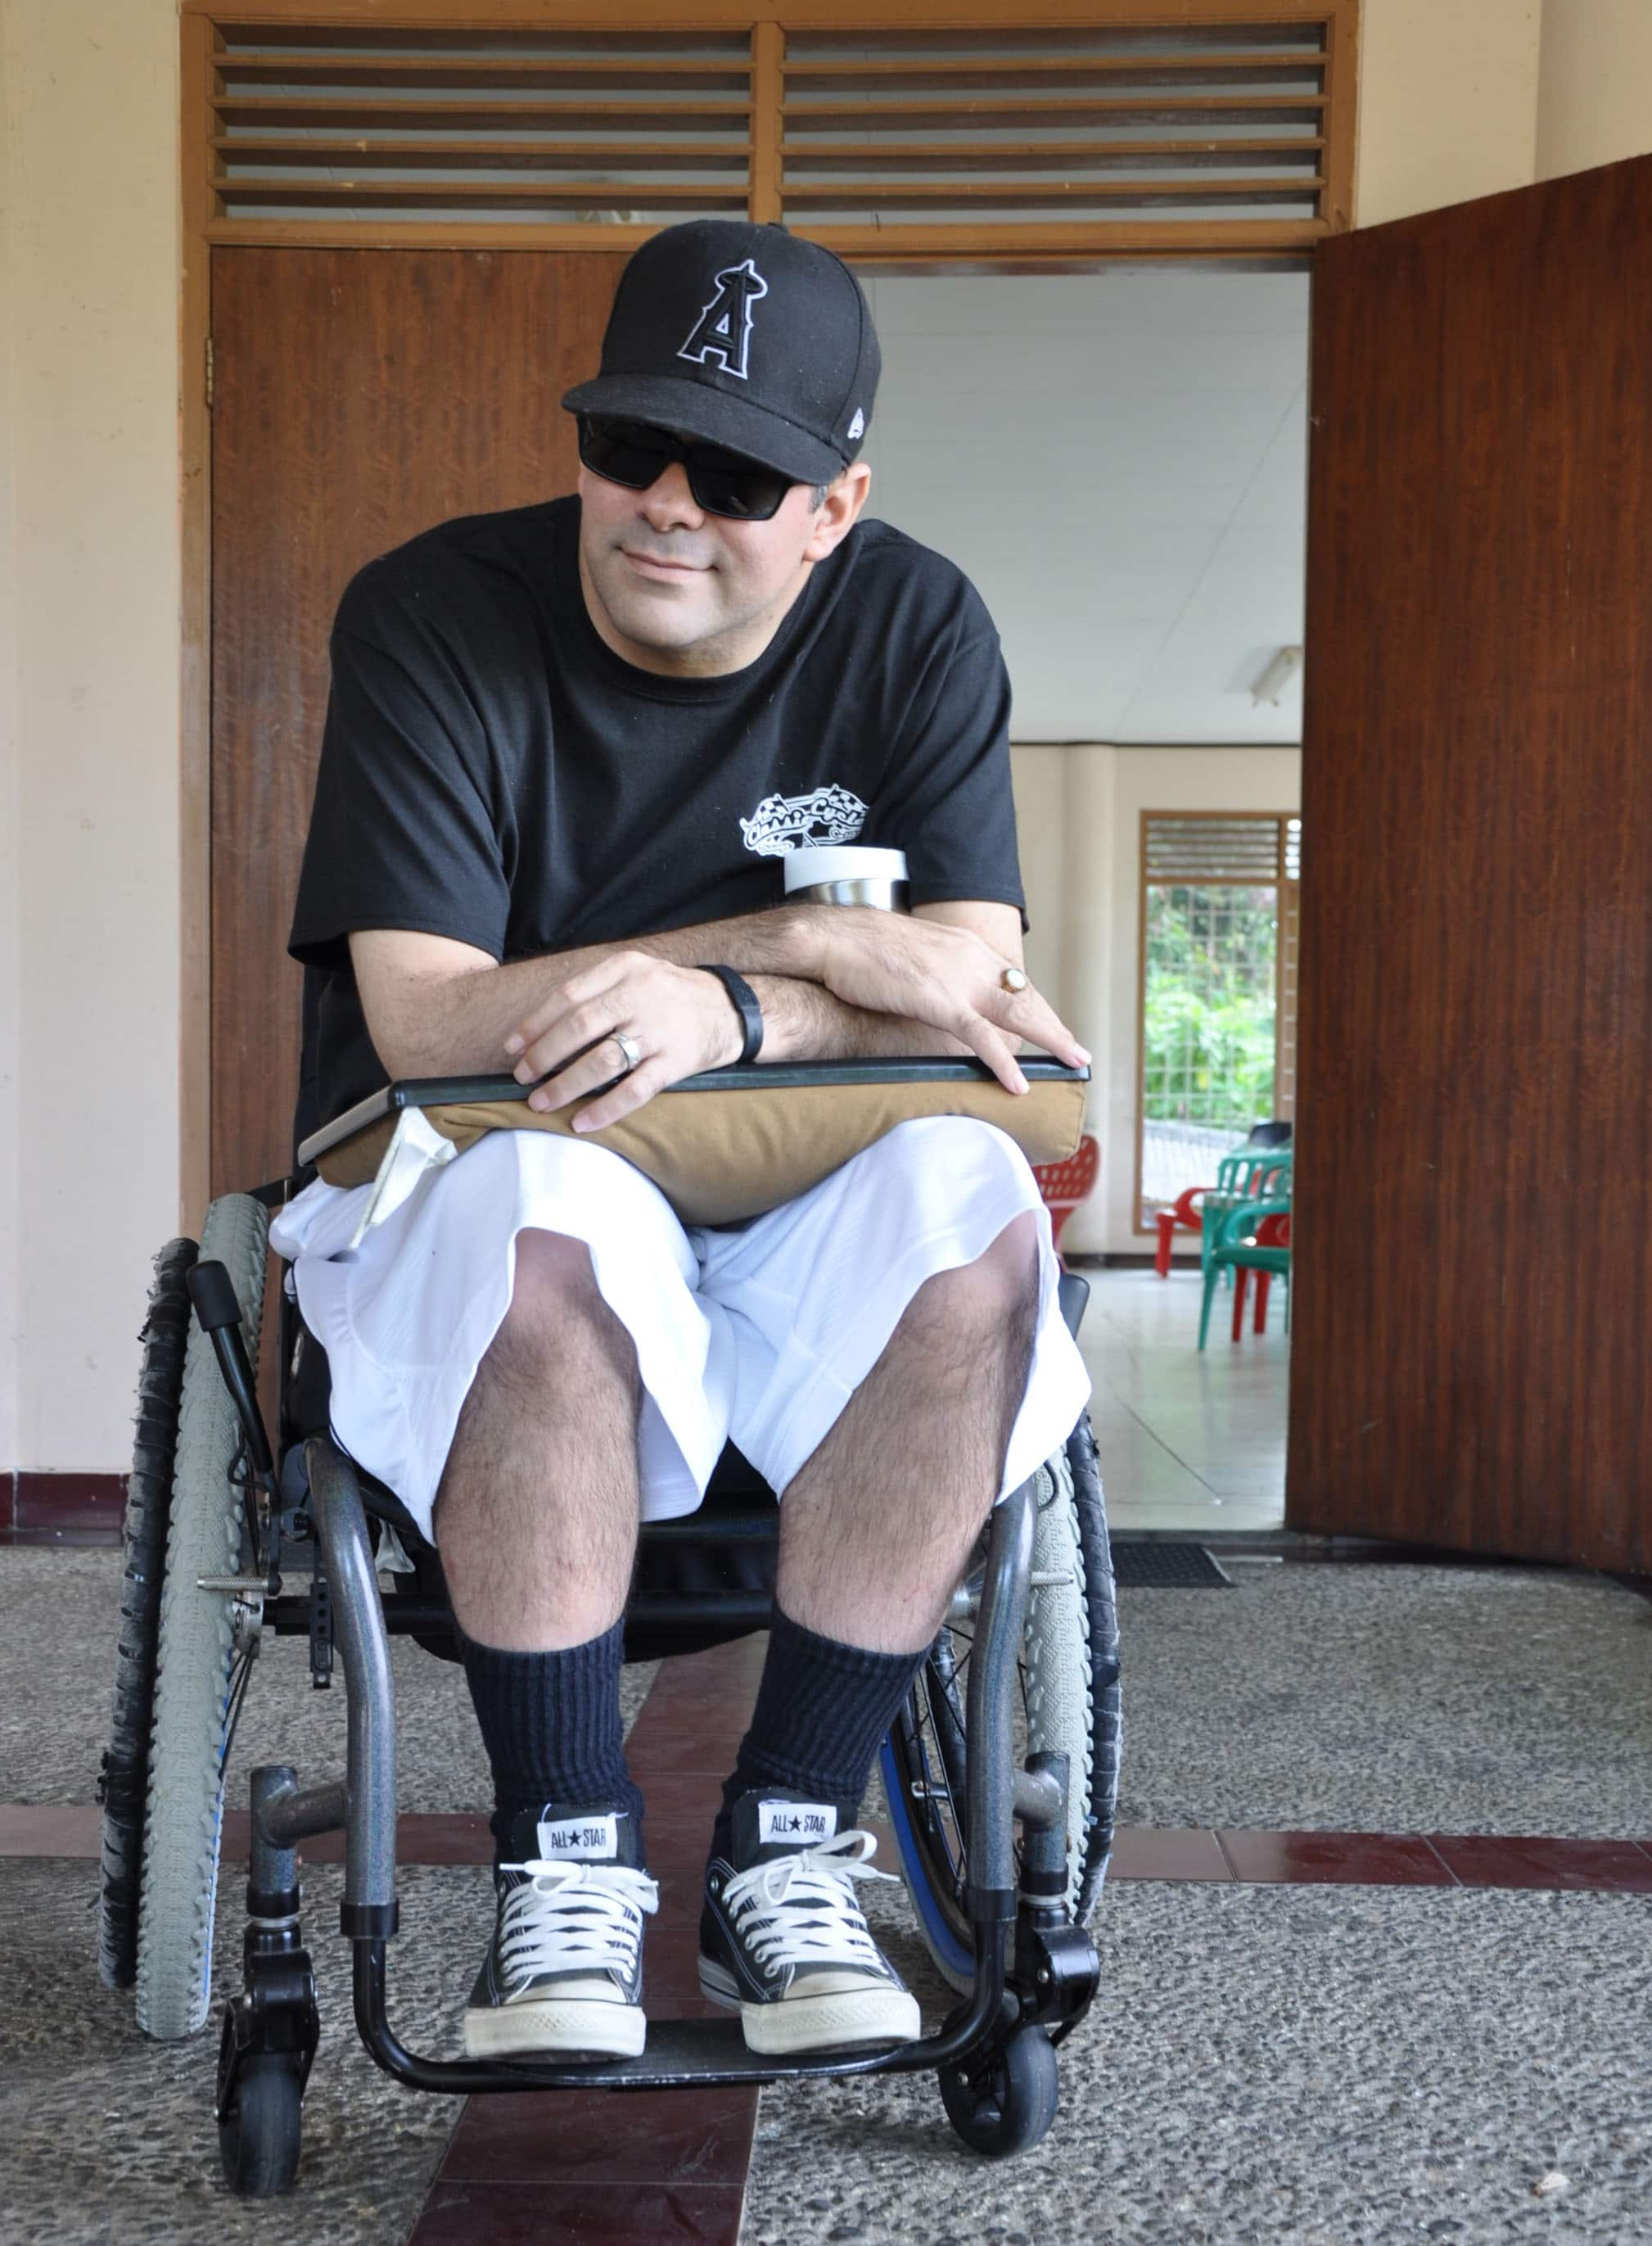 Damien Minna sits in his wheelchair wearing a baseball cap and black sunglasses.